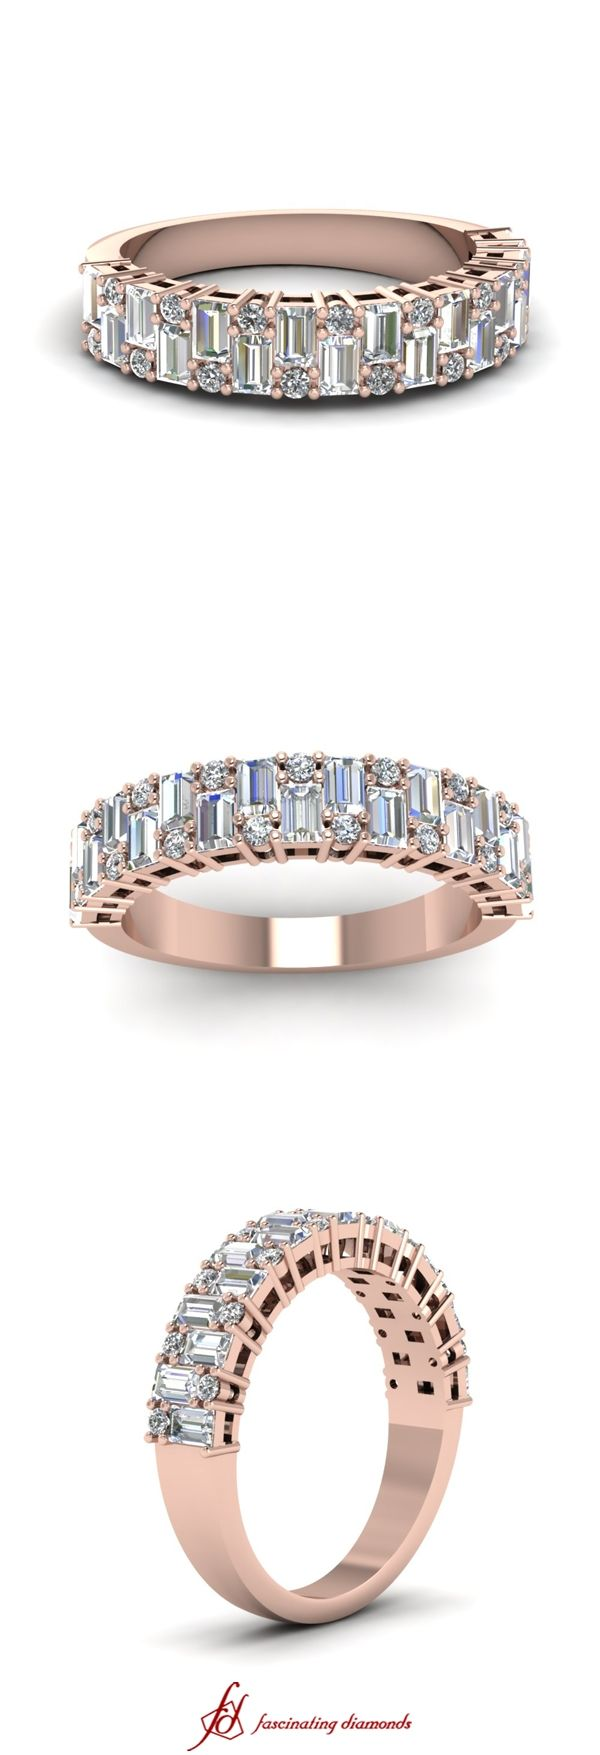 Baguette Rapture Band || White Diamond Wedding Band In 14K Rose Gold